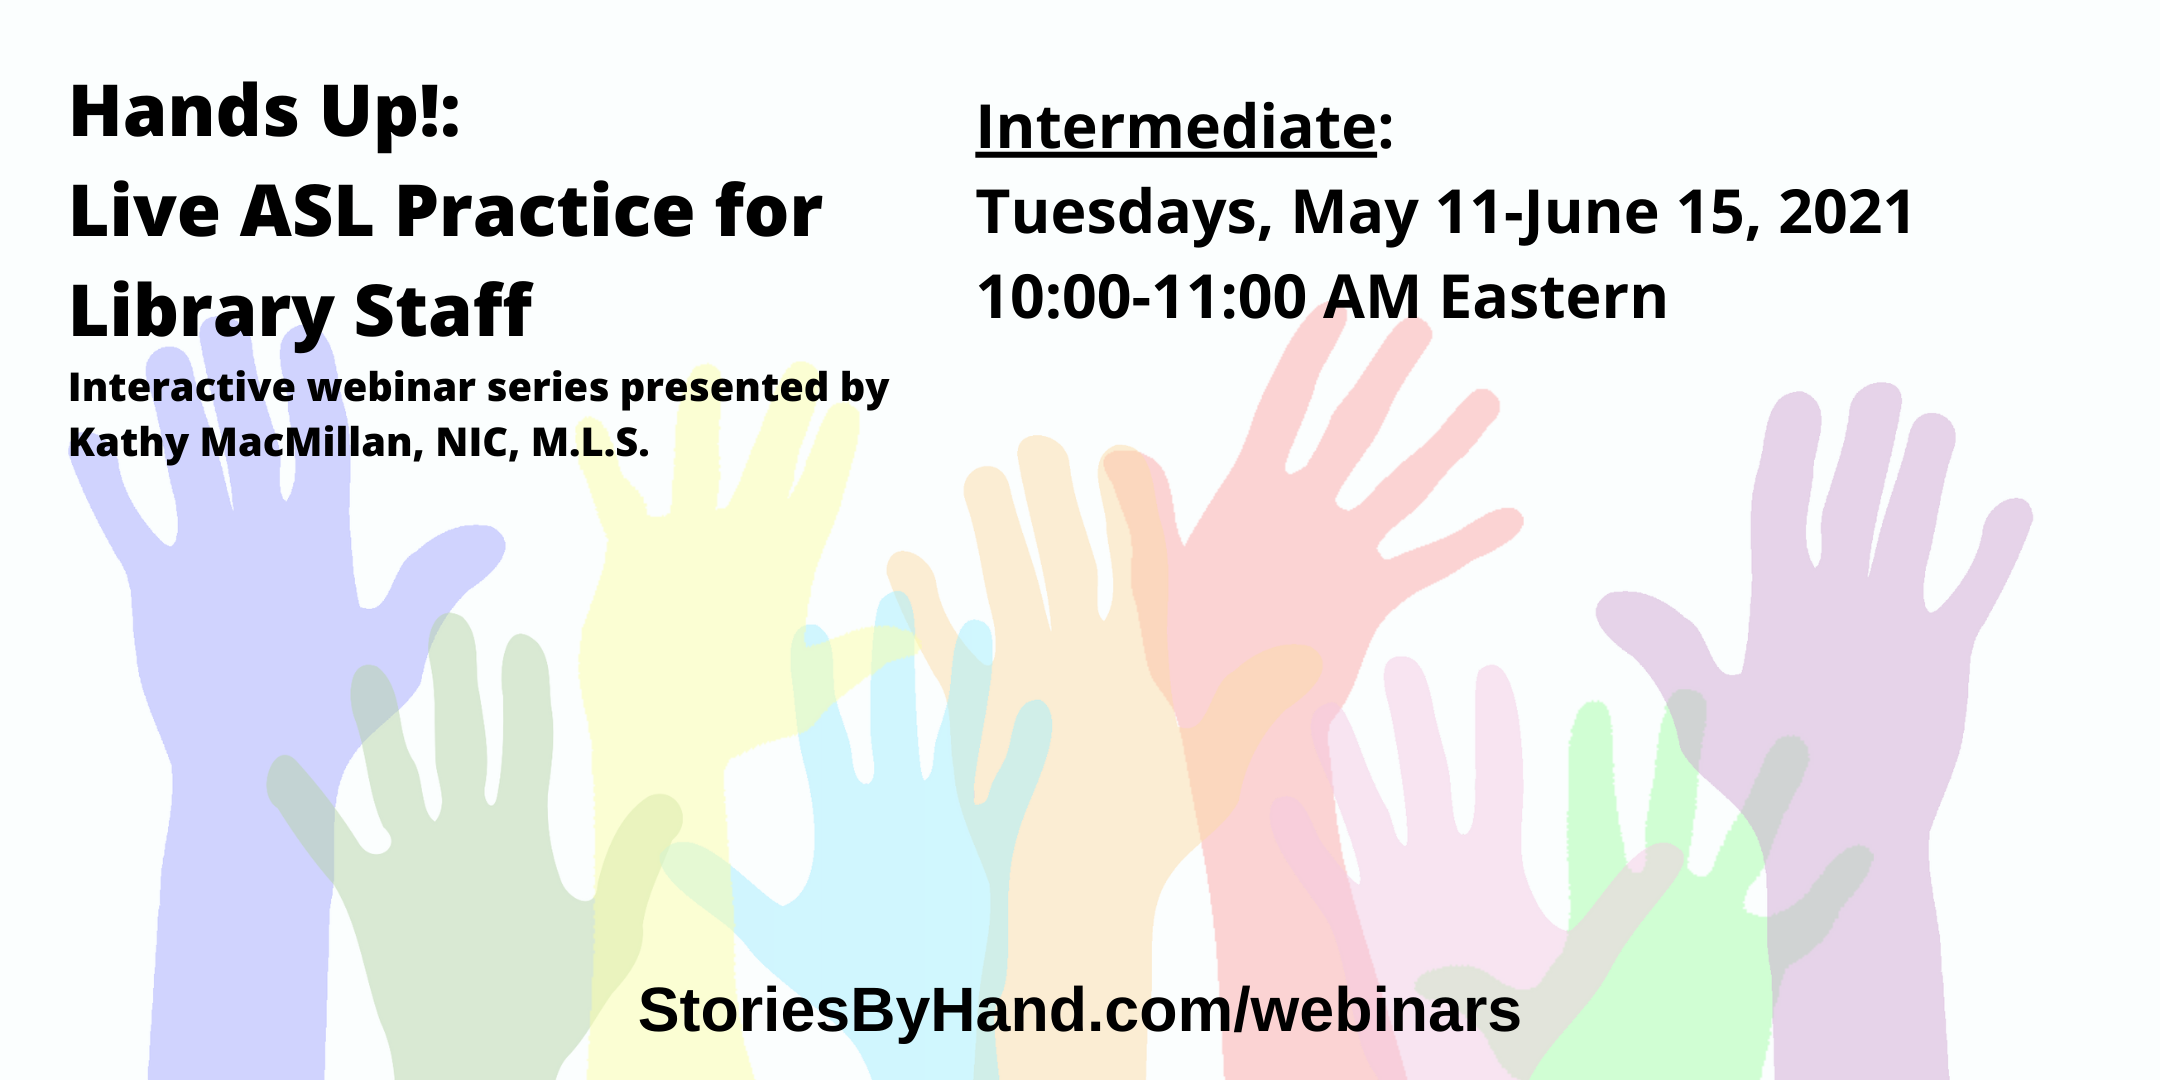 Hands Up!: Live ASL Practice for Library Staff | Interactive webinar series presented by Kathy MacMillan, NIC, M.L.S. | Intermediate: Tuesdays, May 11-June 15, 2021, 10-11 AM Eastern | StoriesByHand.com/webinars | Words appear over a drawing of upraised hands in bright pastel colors against a white background.